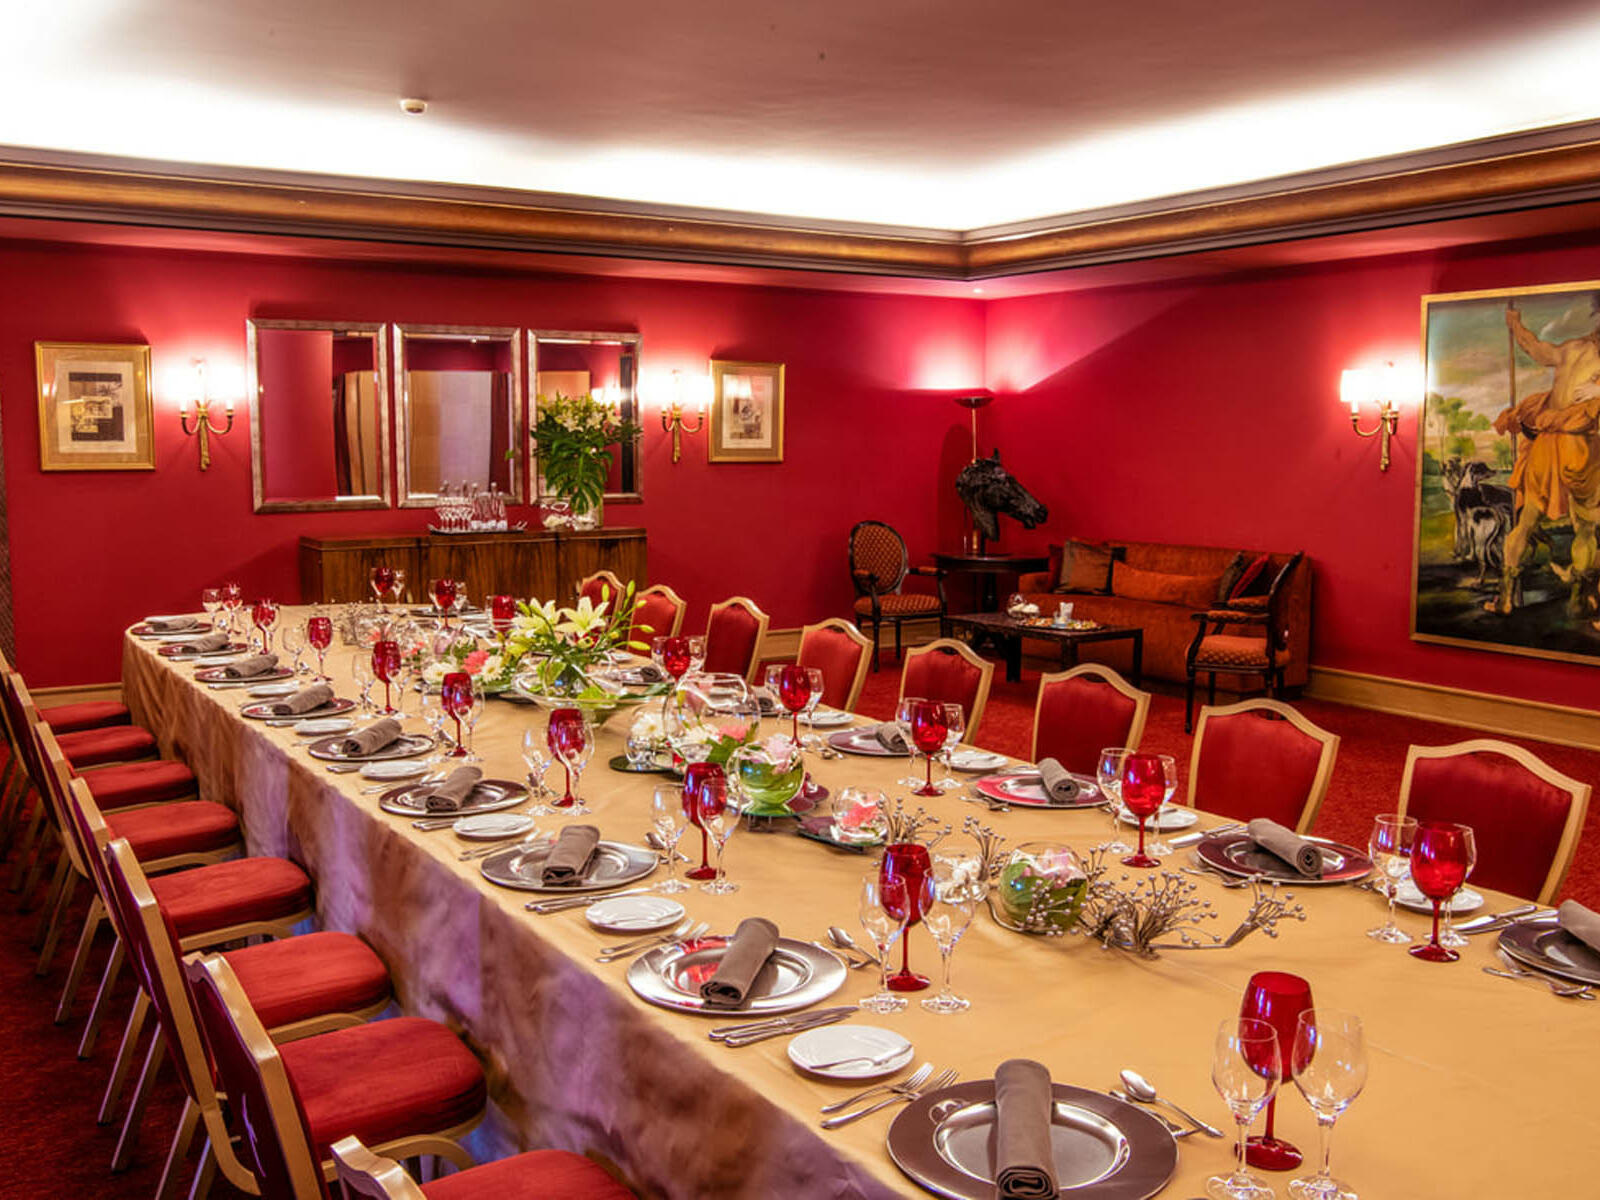 Room with beautiful centralized table at Hotel Cascais Miragem